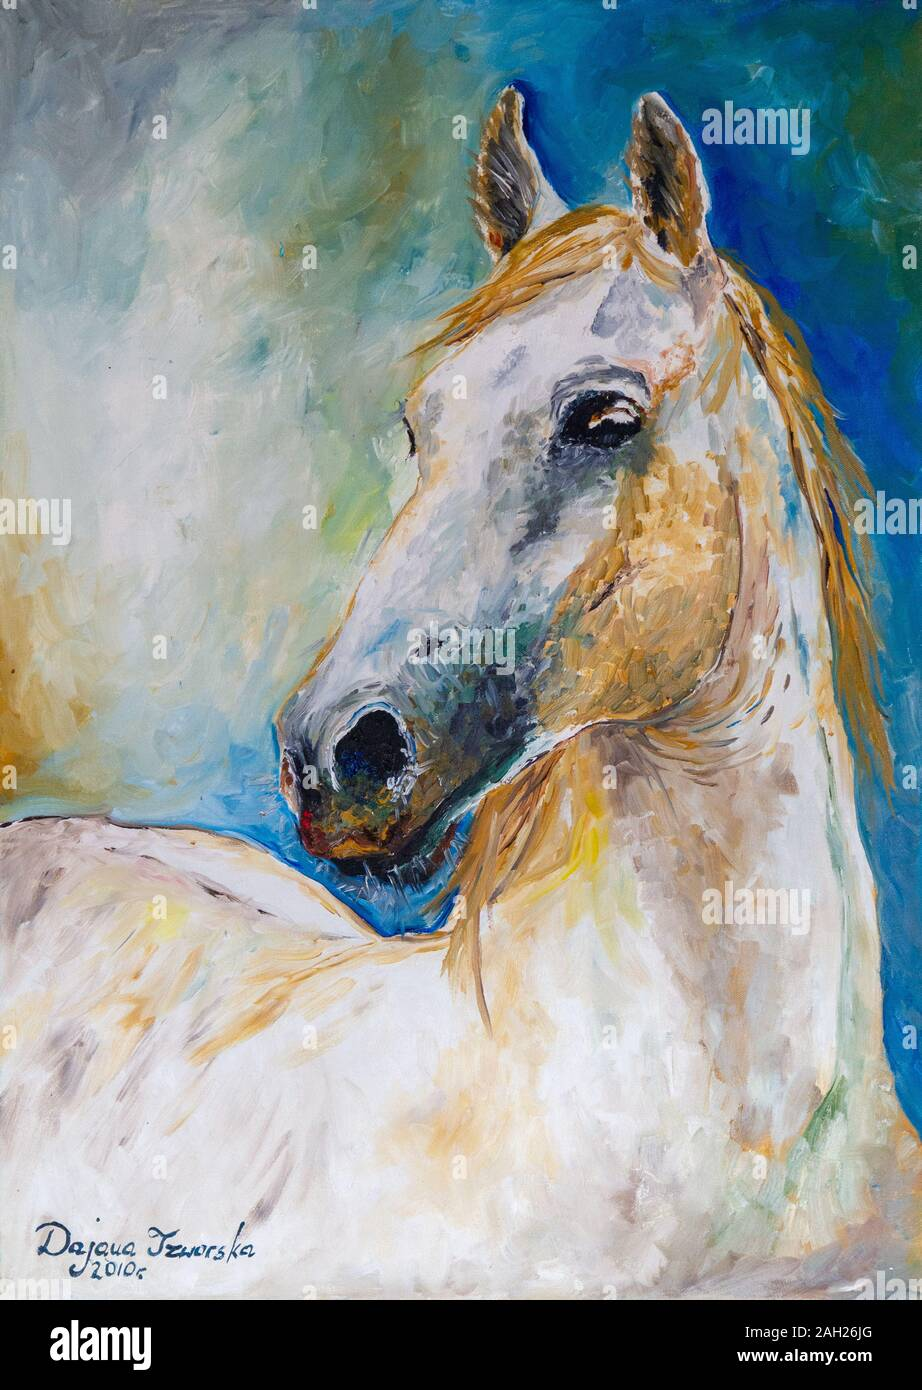 A Painting Of A White Horse Stock Photo Alamy